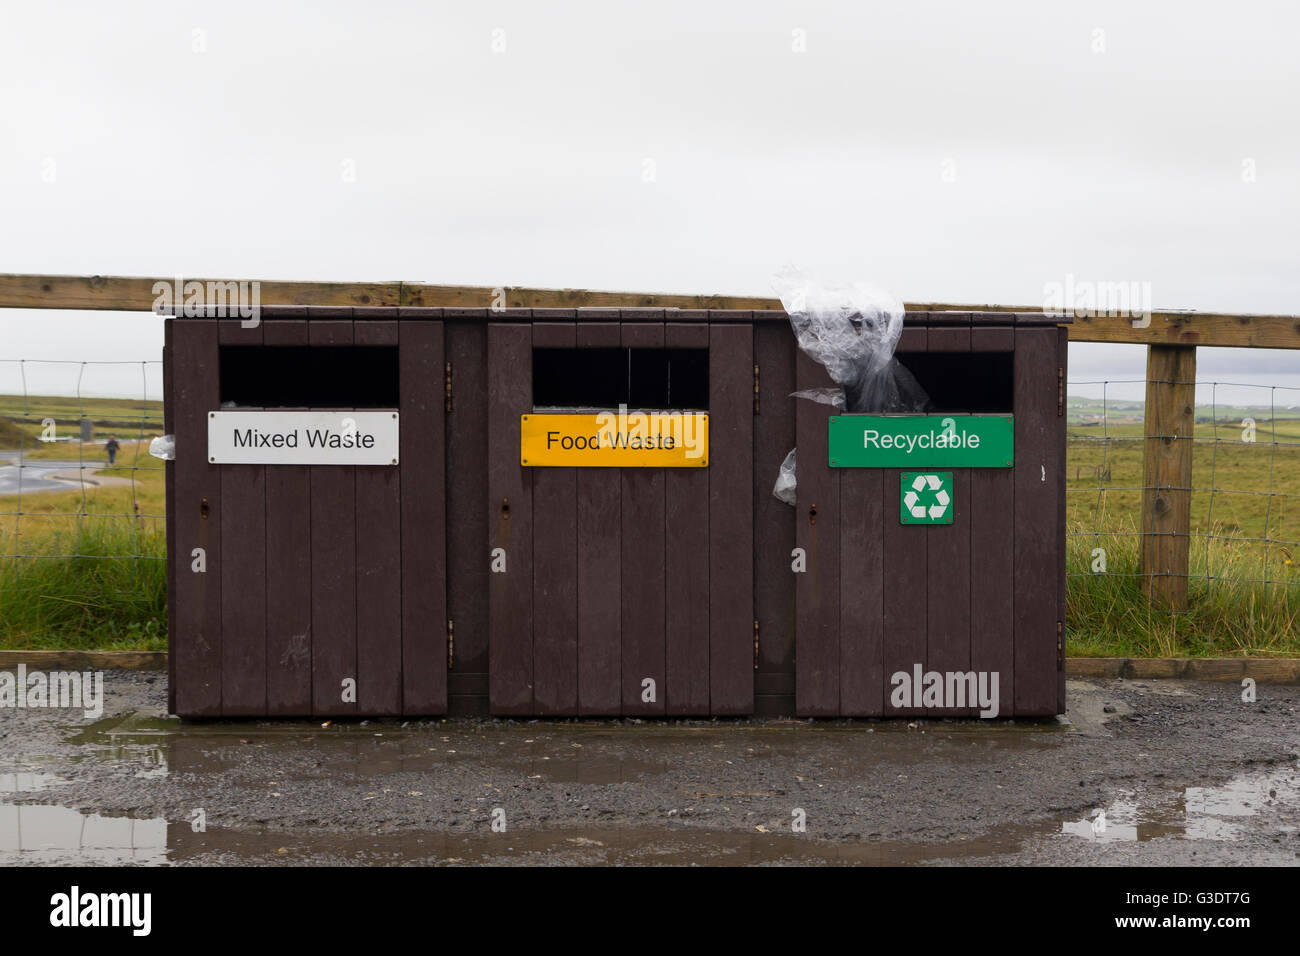 Three rubbish bins for mixed waste, food and recyclable - Stock Image